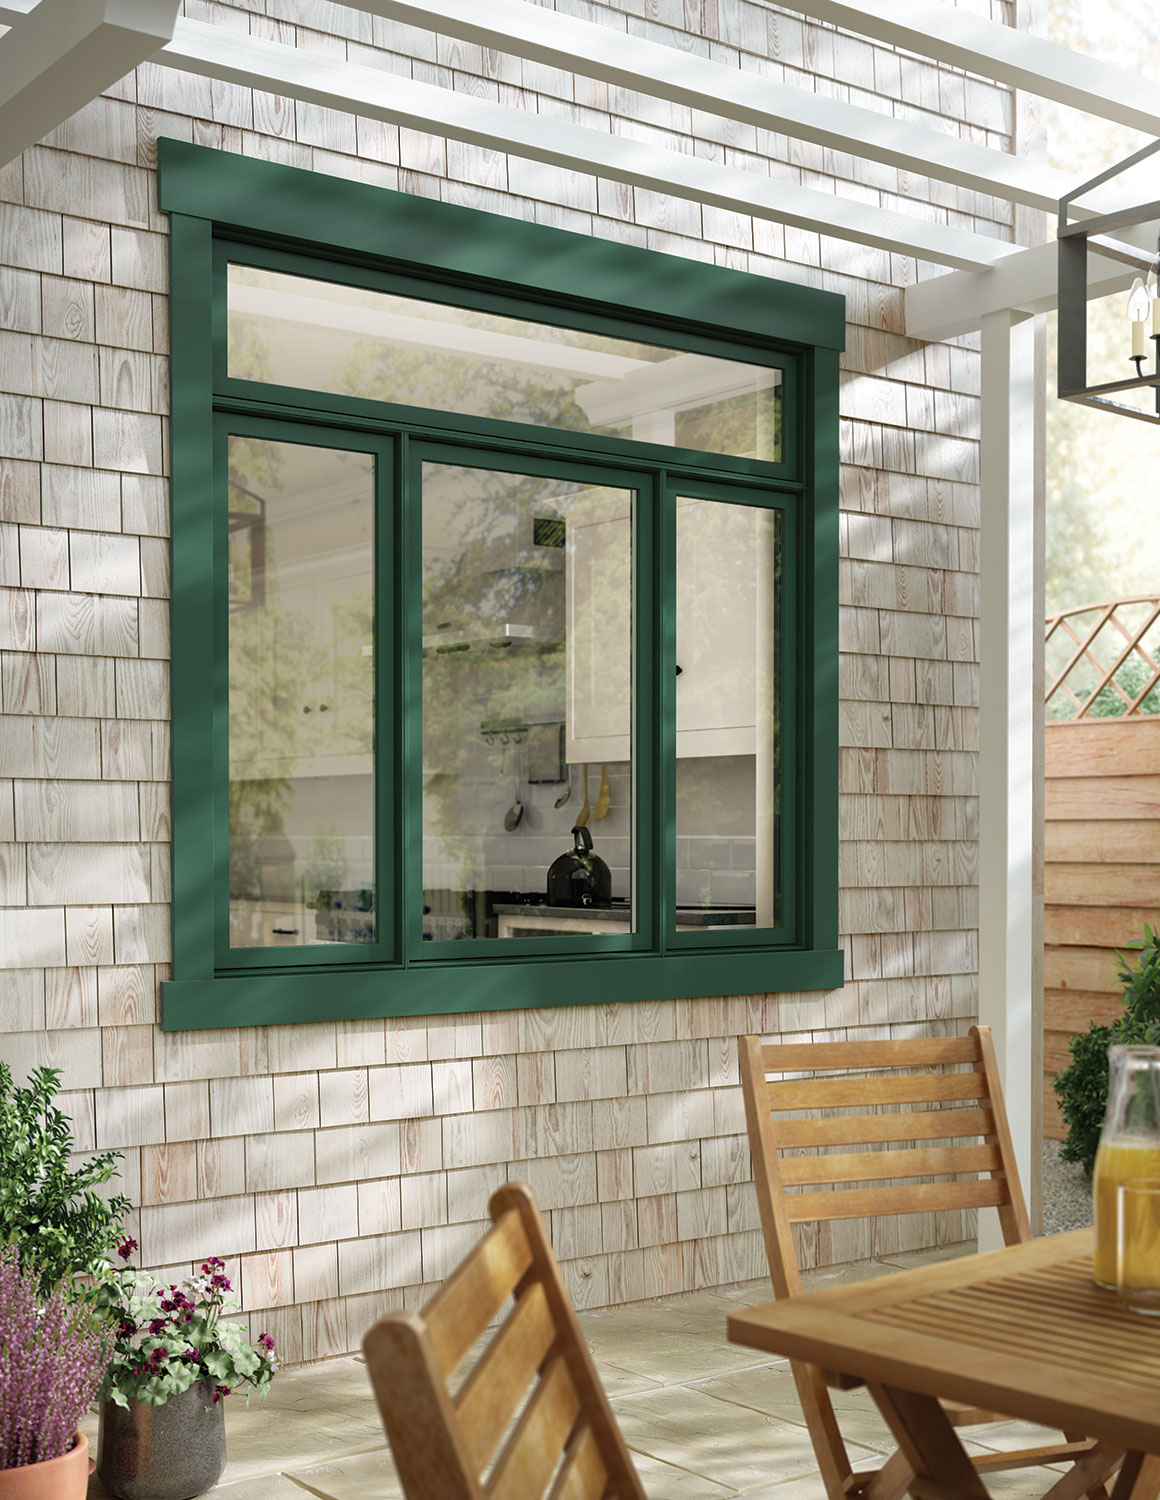 1500 #906F3B Green Exterior Cladded Siteline Kitchen Window image Aluminum Clad Patio Doors 47231160